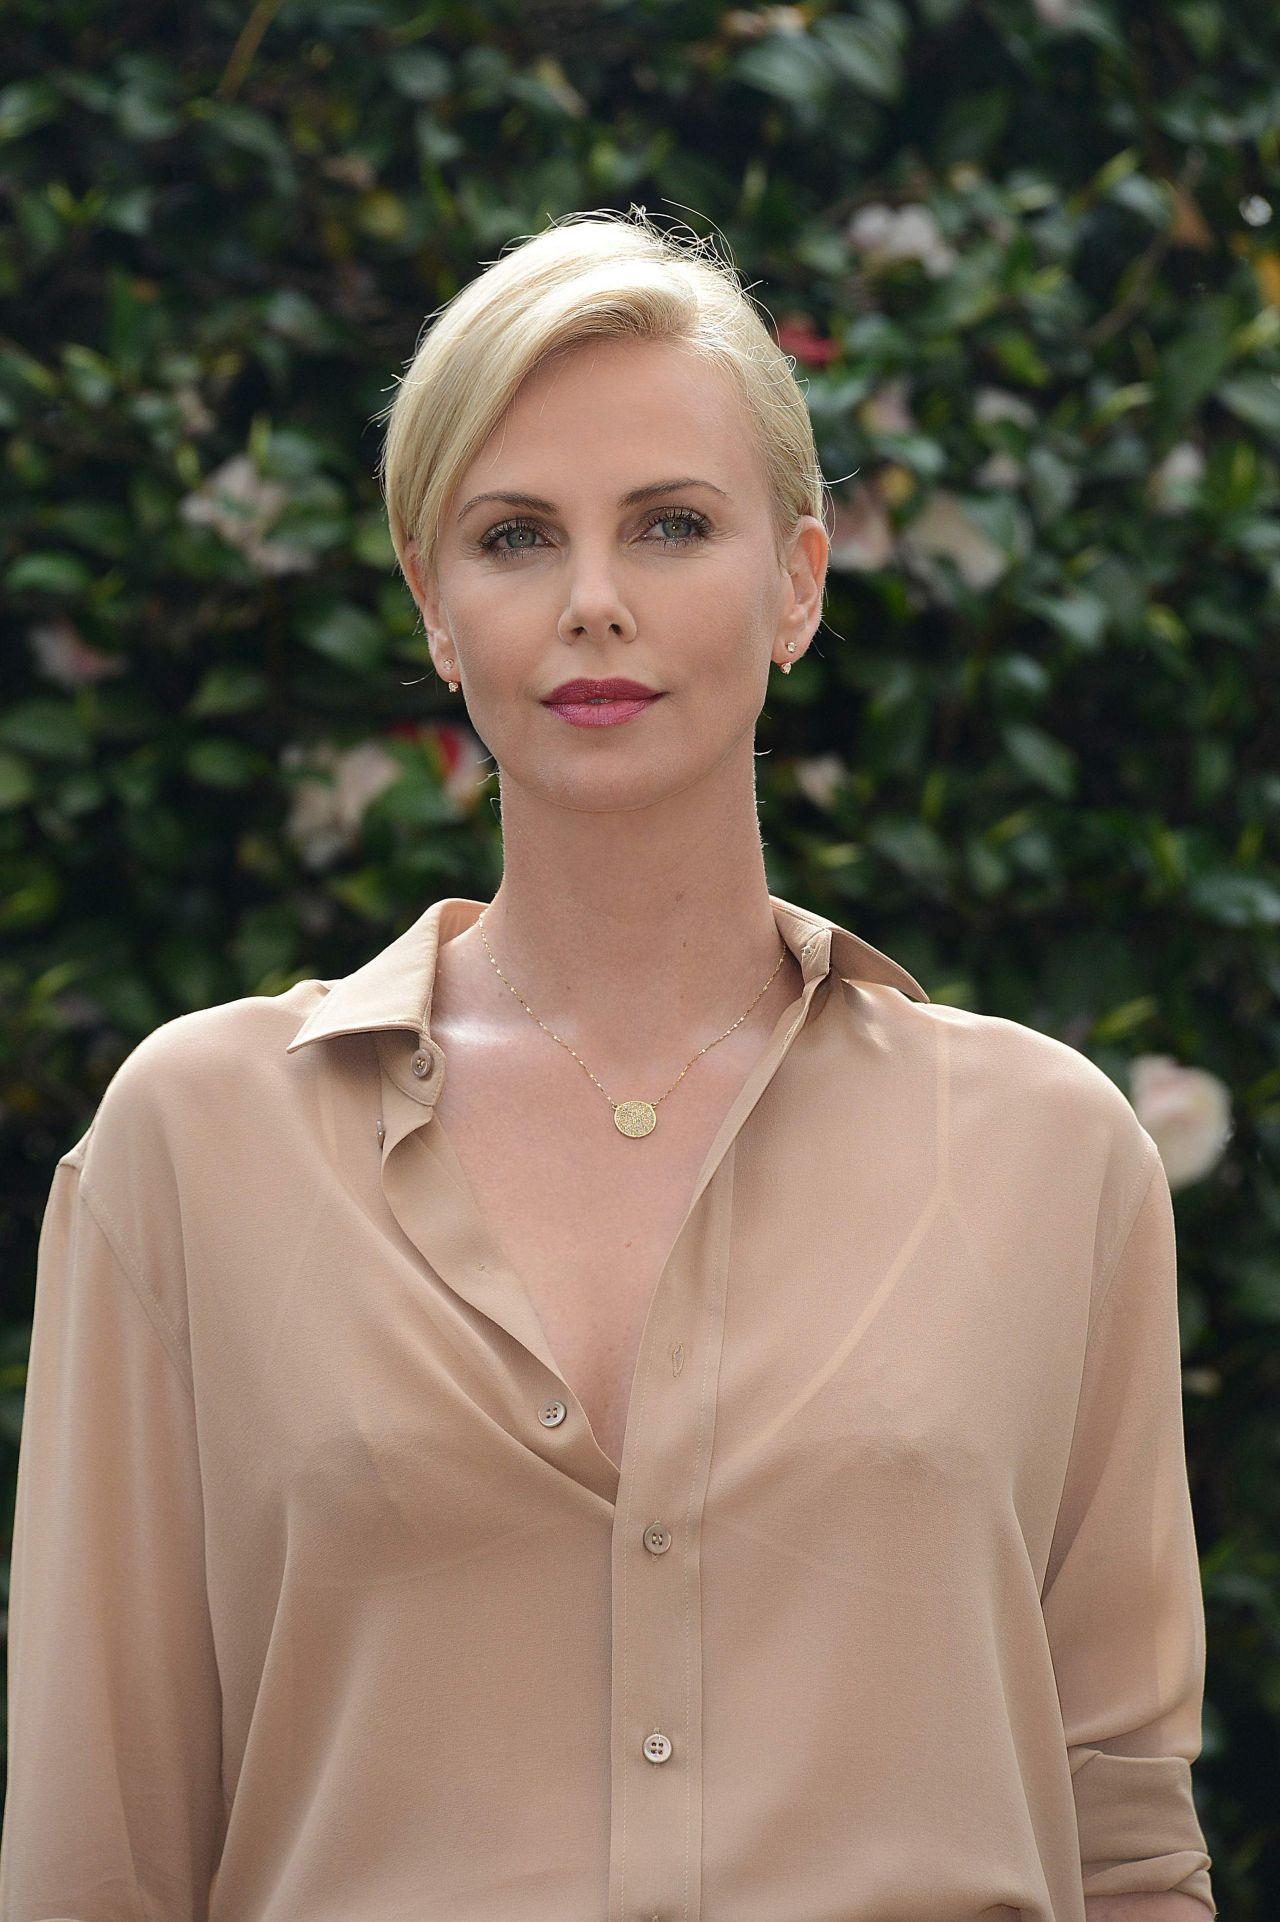 charlize-theron-the-huntsman-and-the-ice-queen-photocall-in-milan-italy-5